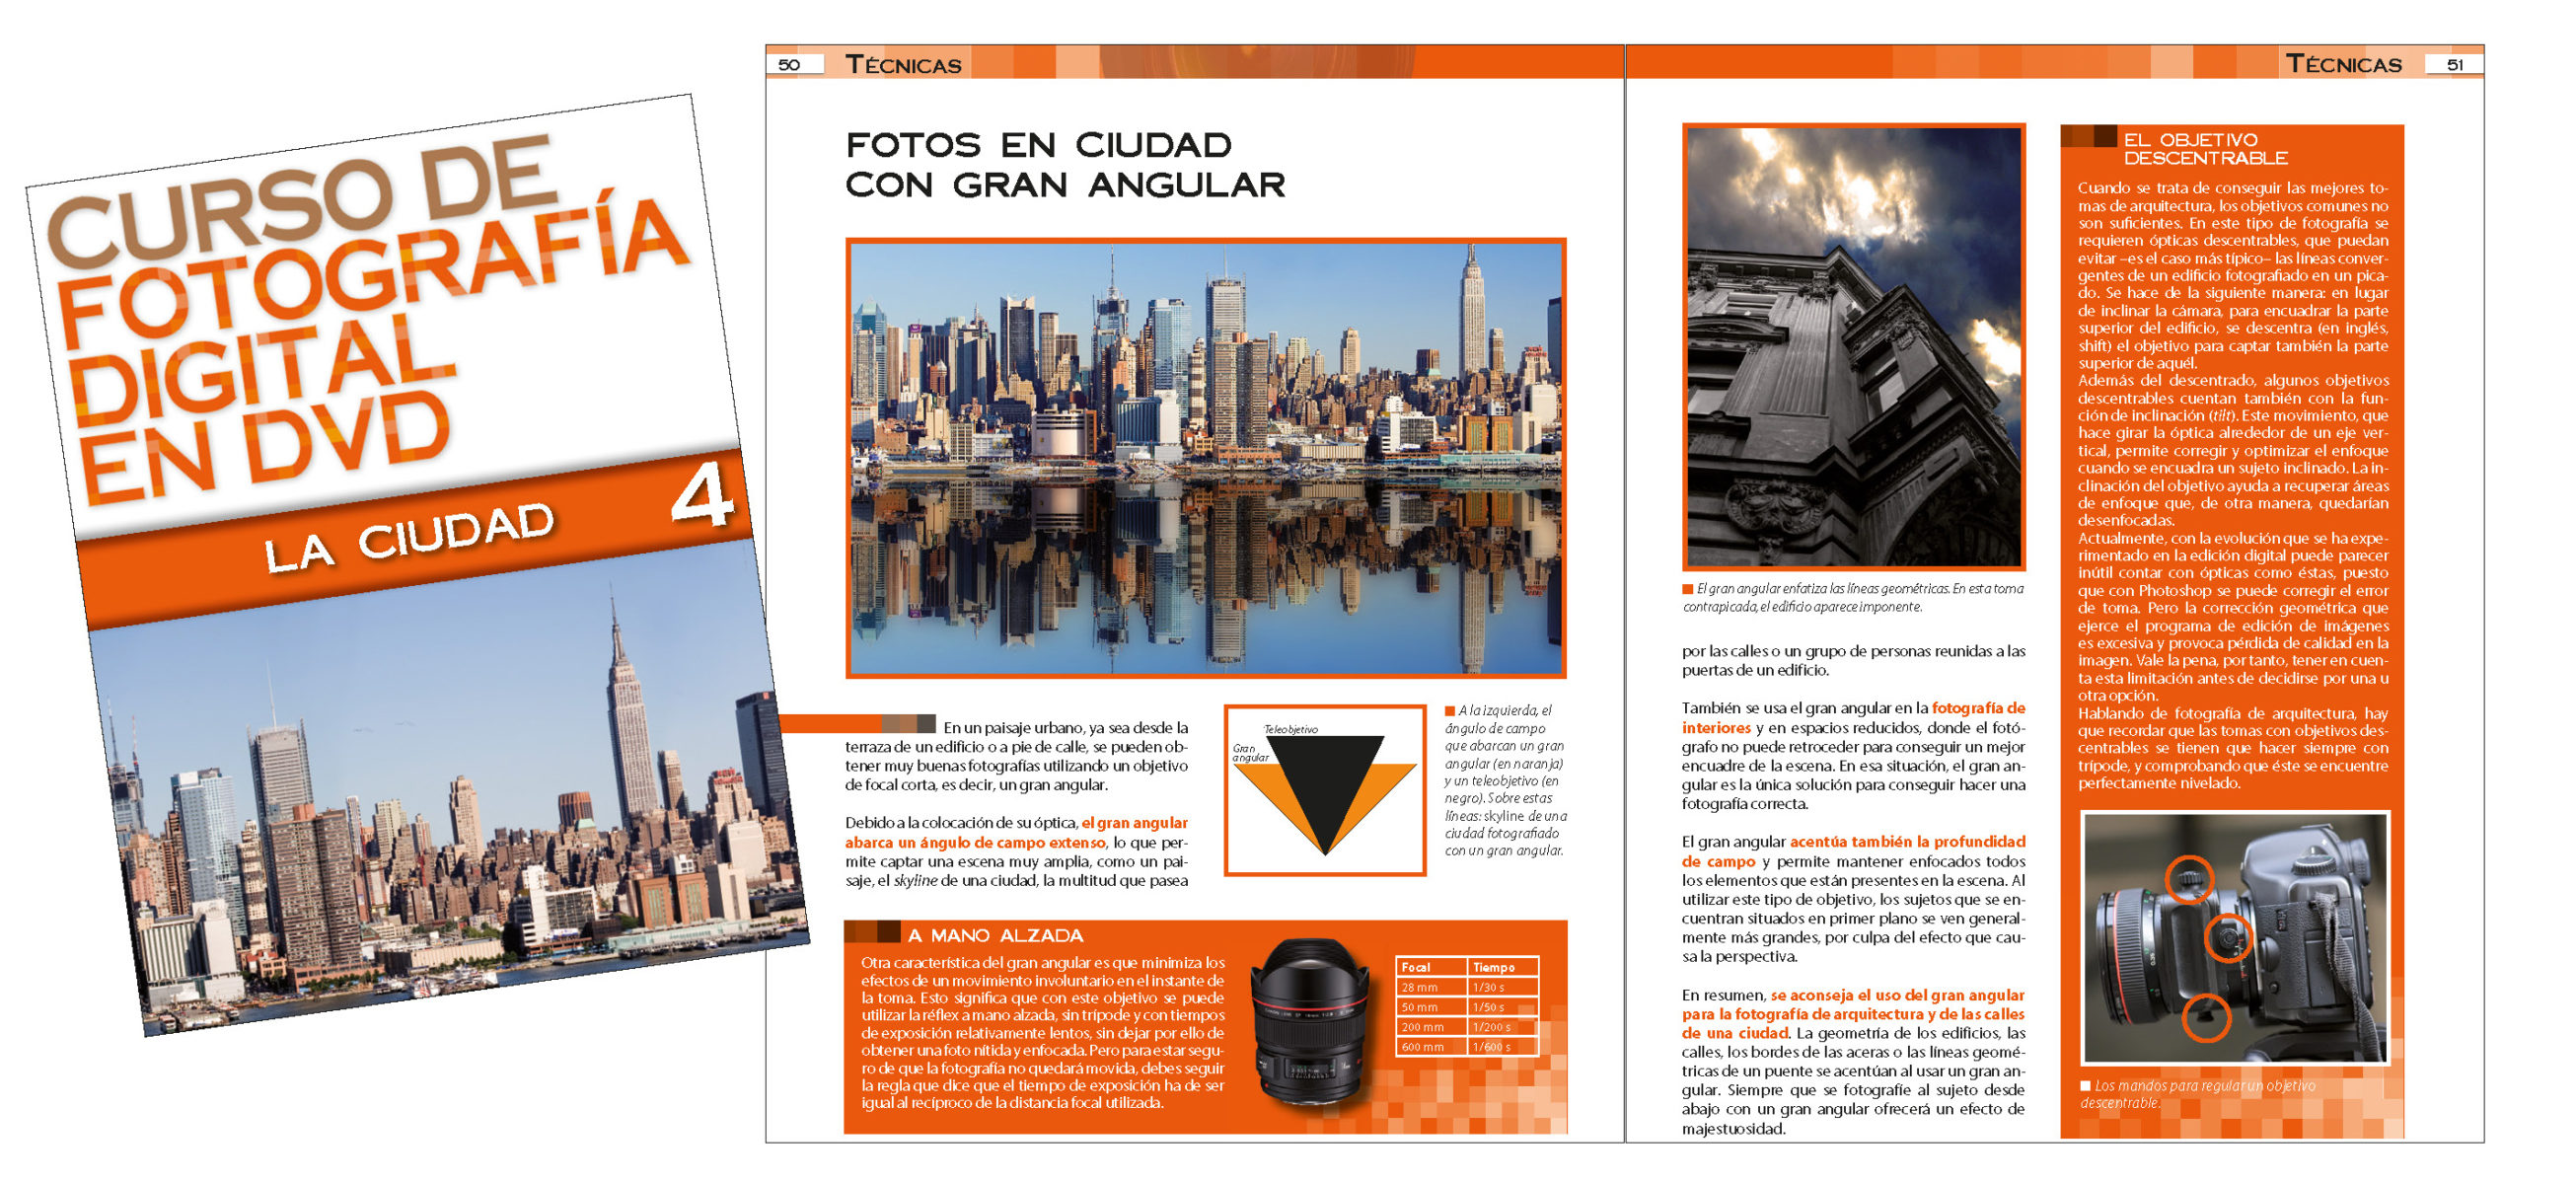 314 editoriales coleccionables